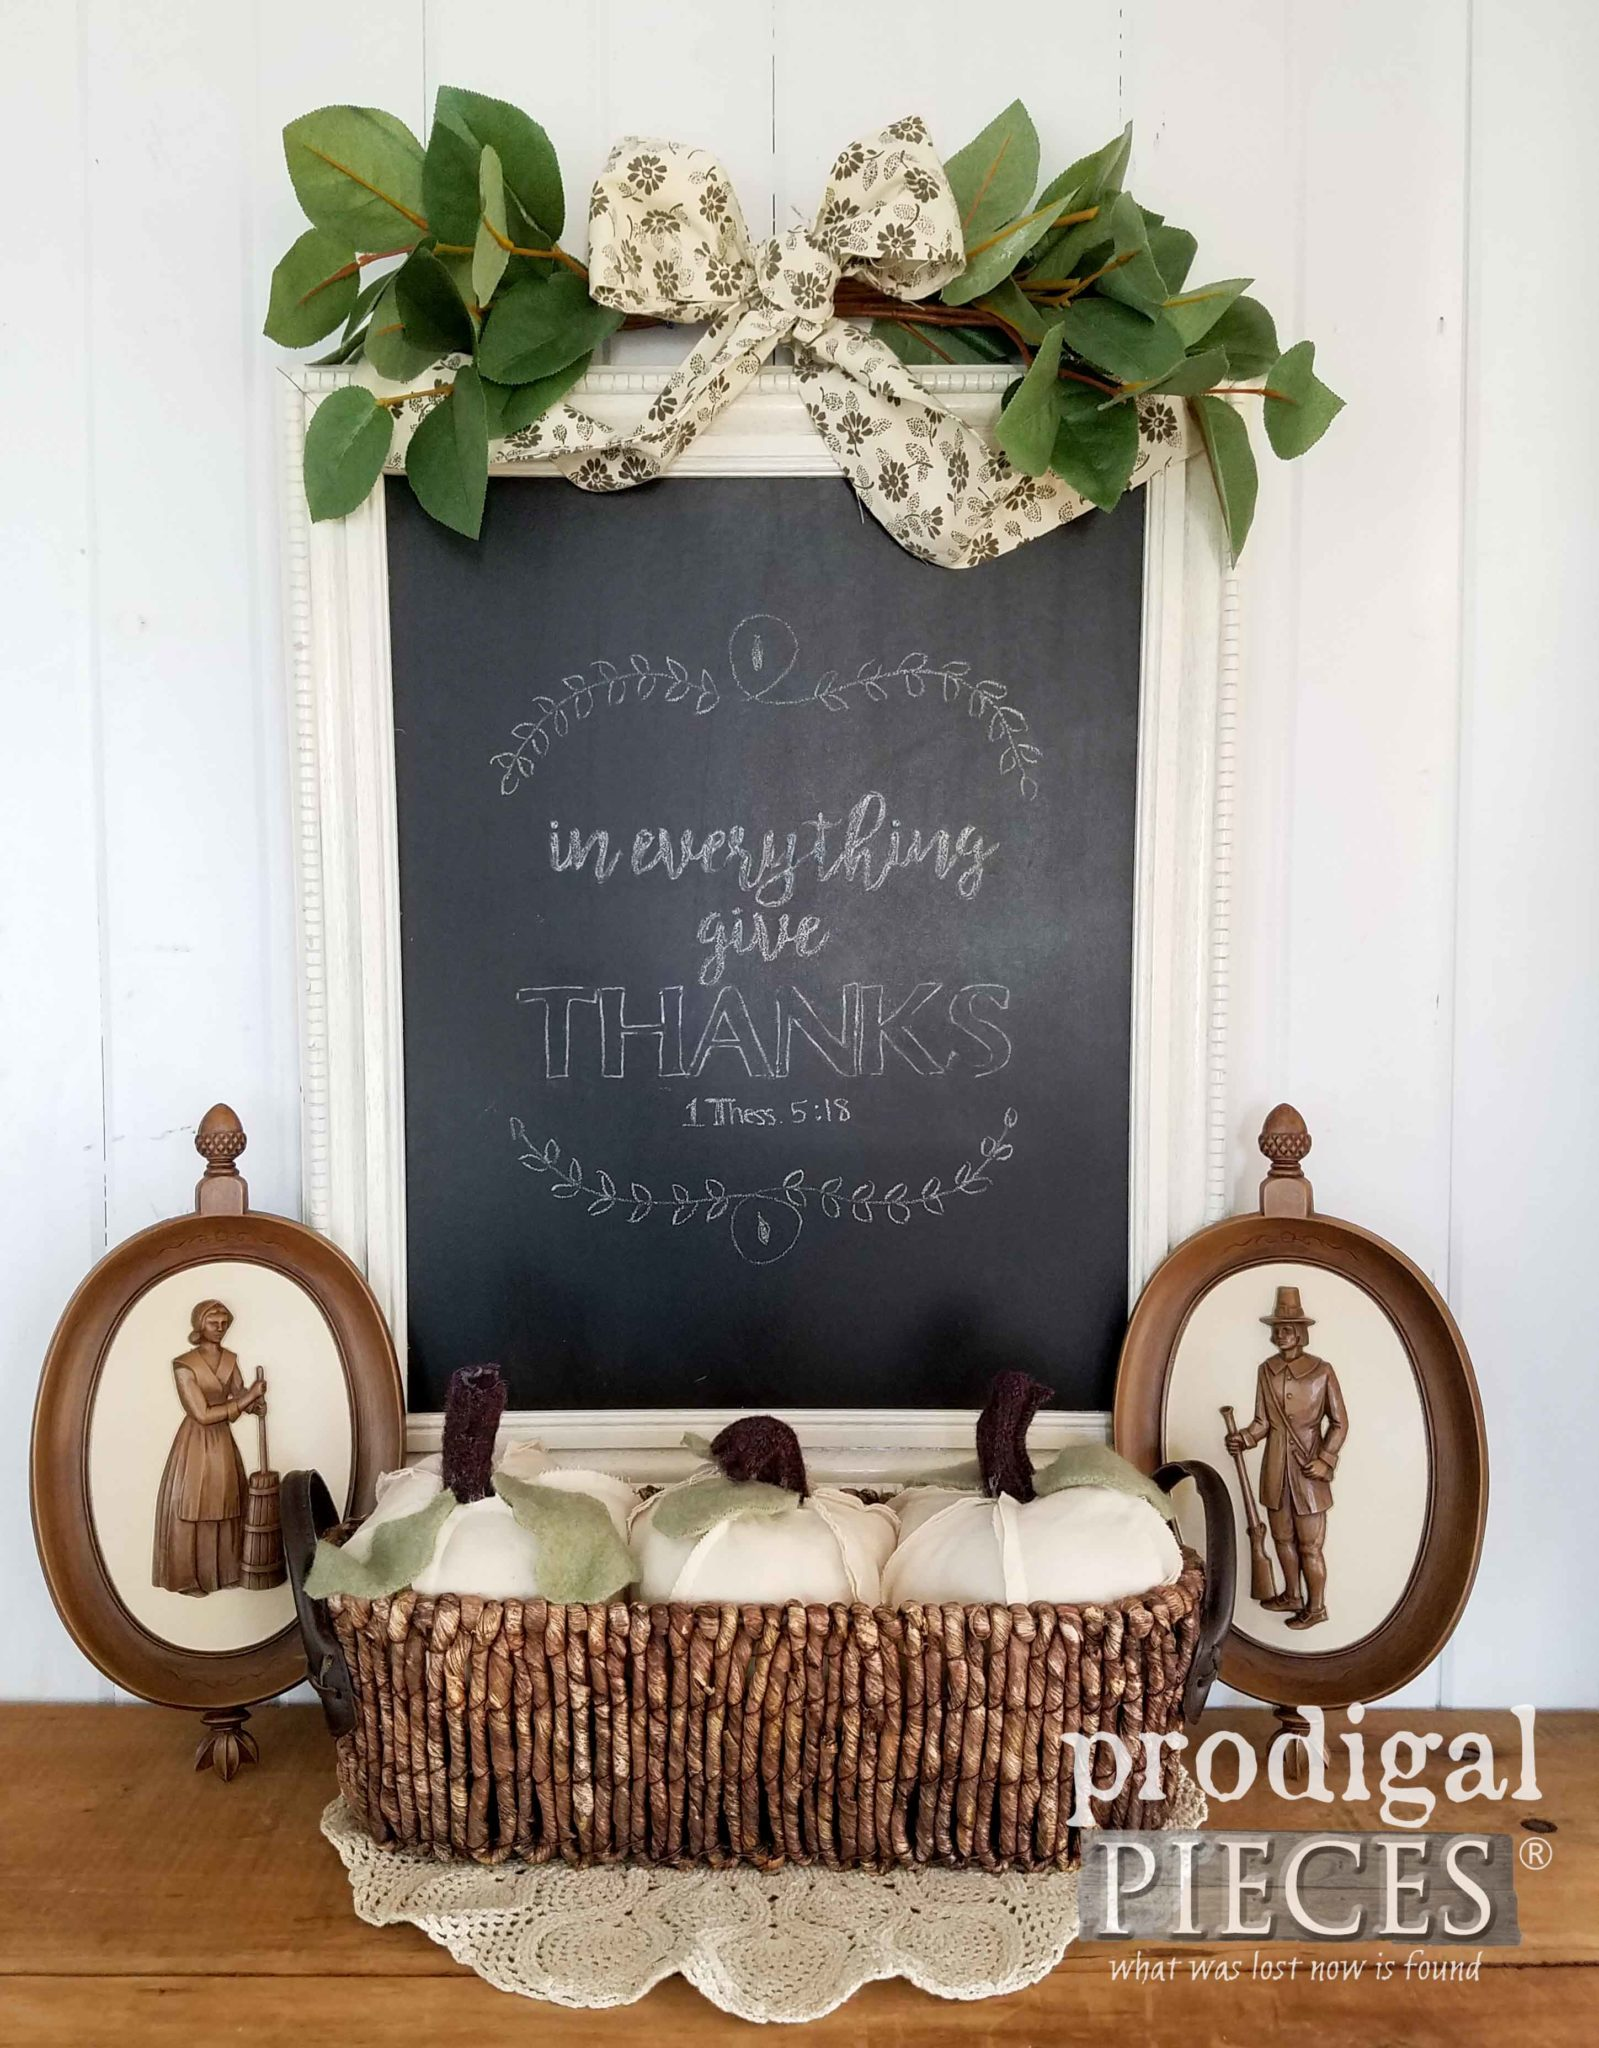 DIY Thrifted Thanksgiving Vignette. Perfect for Last-Minute Decor | by Prodigal Pieces | prodigalpieces.com